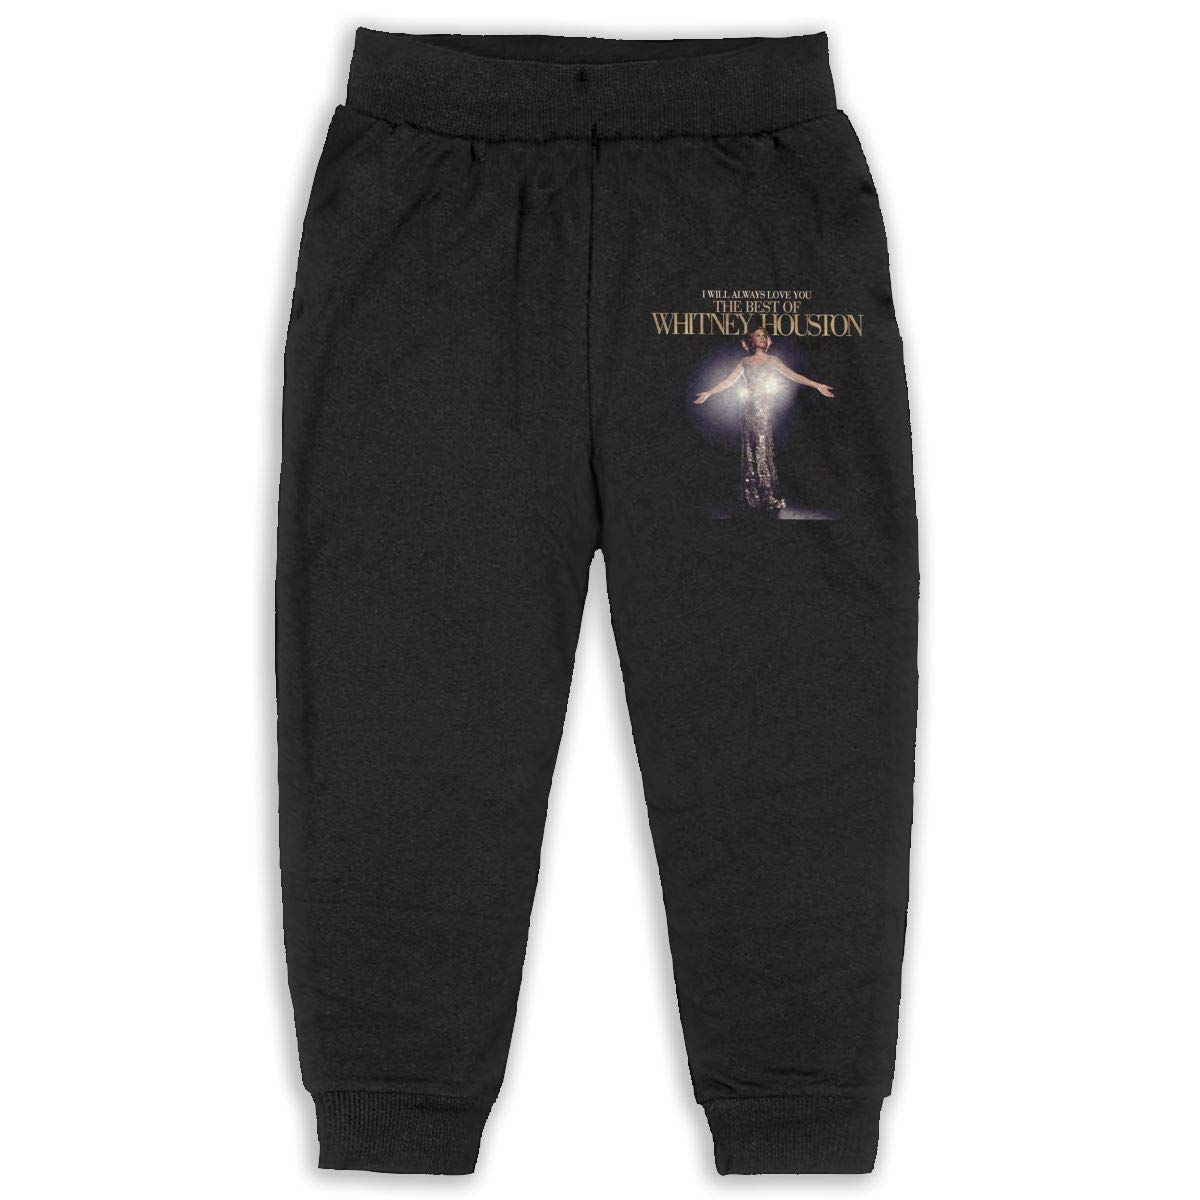 Trisharosew Kids Whitney Houston I Look to You Music Band Boys Girls Sweatpants Stretch Jogger Pants Back Pocket Black